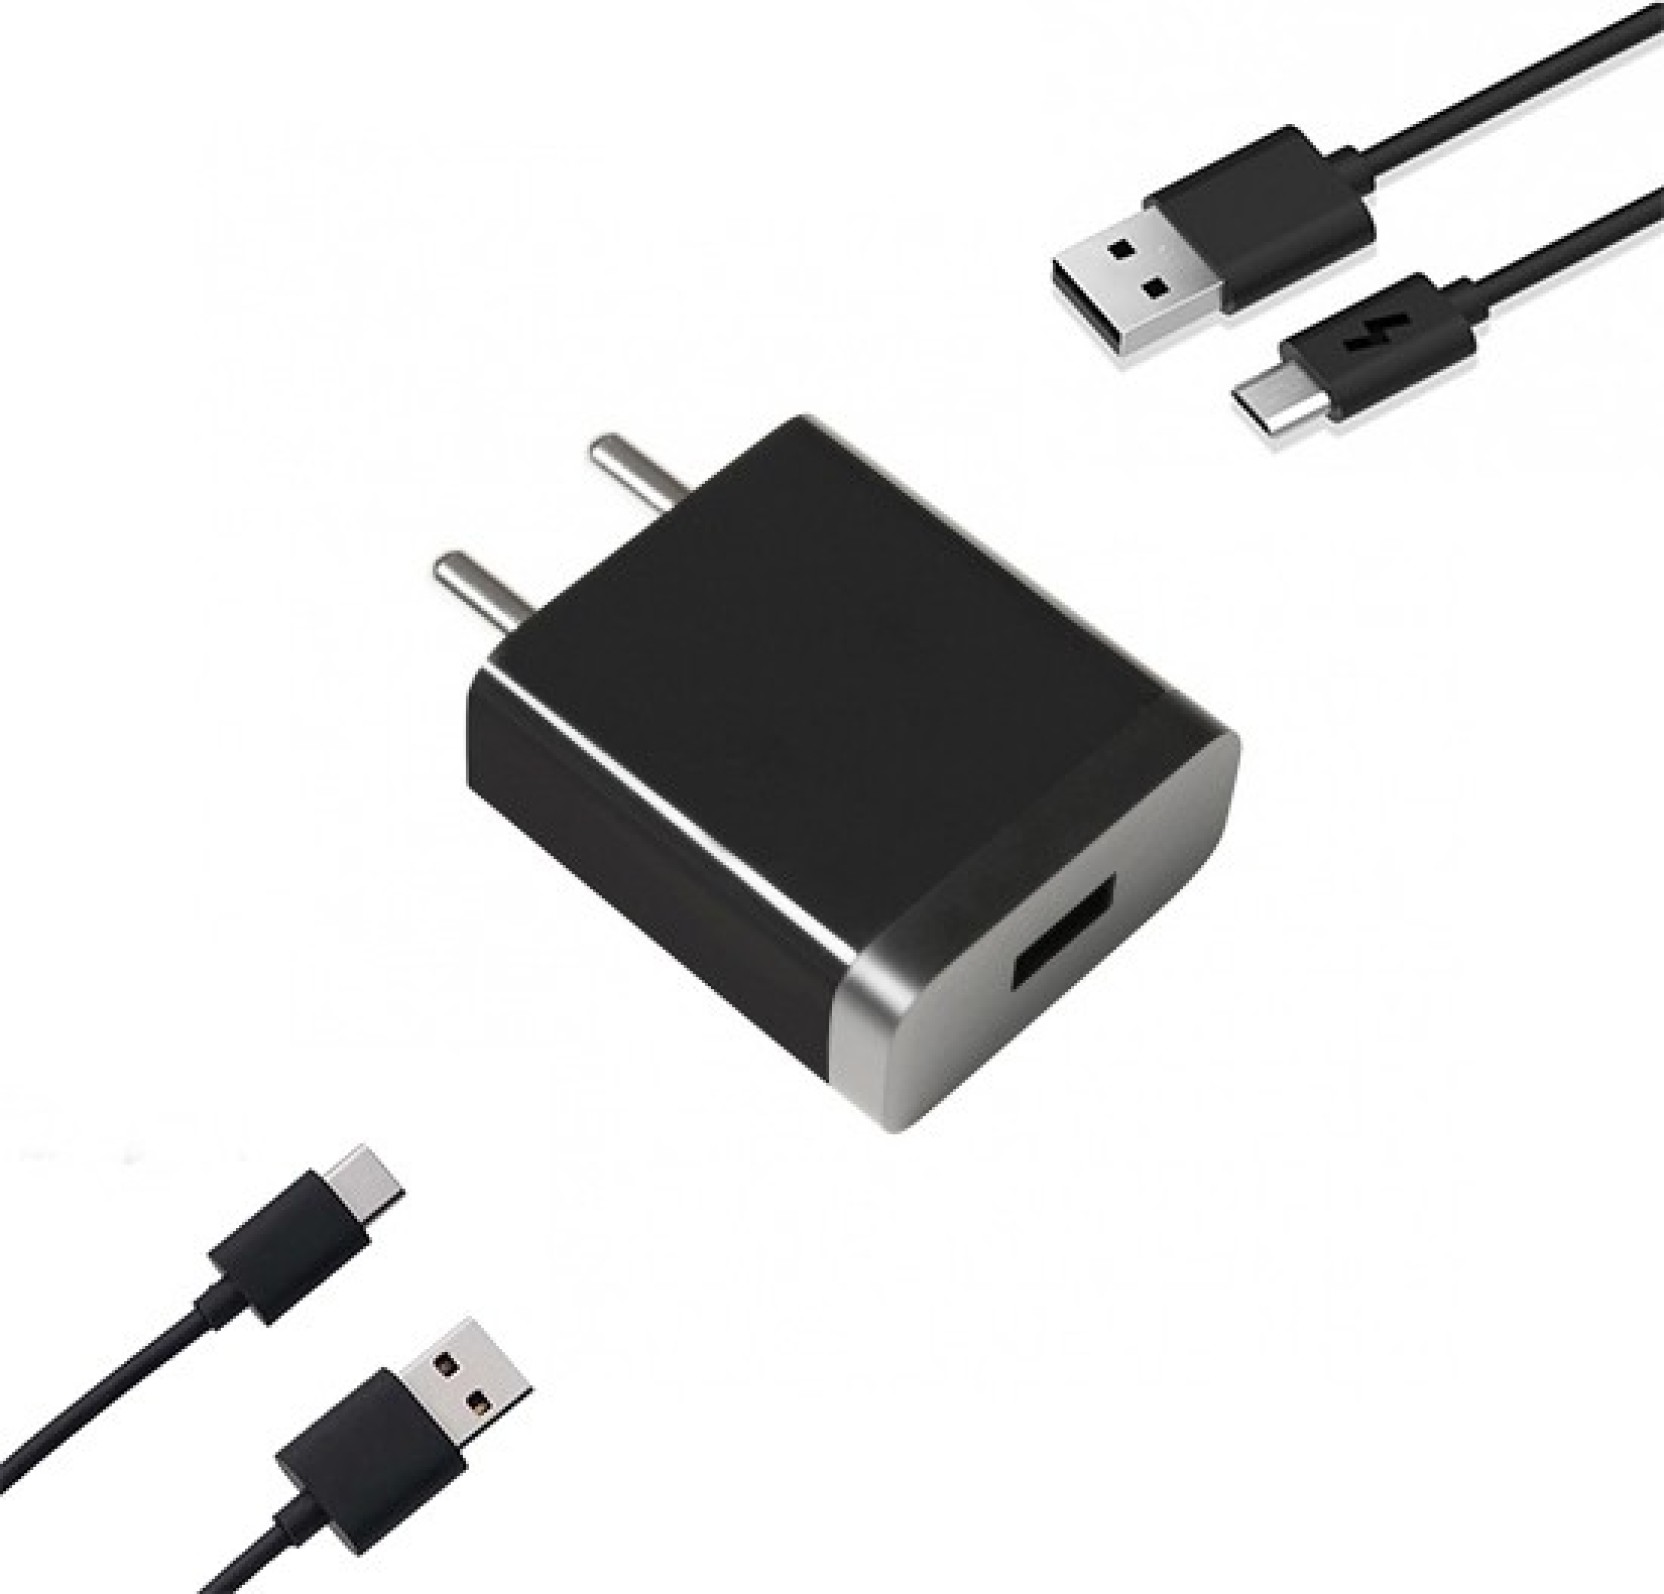 Gadget Phoenix Gp Charger Mi Devices Standard 2a Micro Usb Cable Travel Xiaomi 2ampere Original Type C Add To Cart